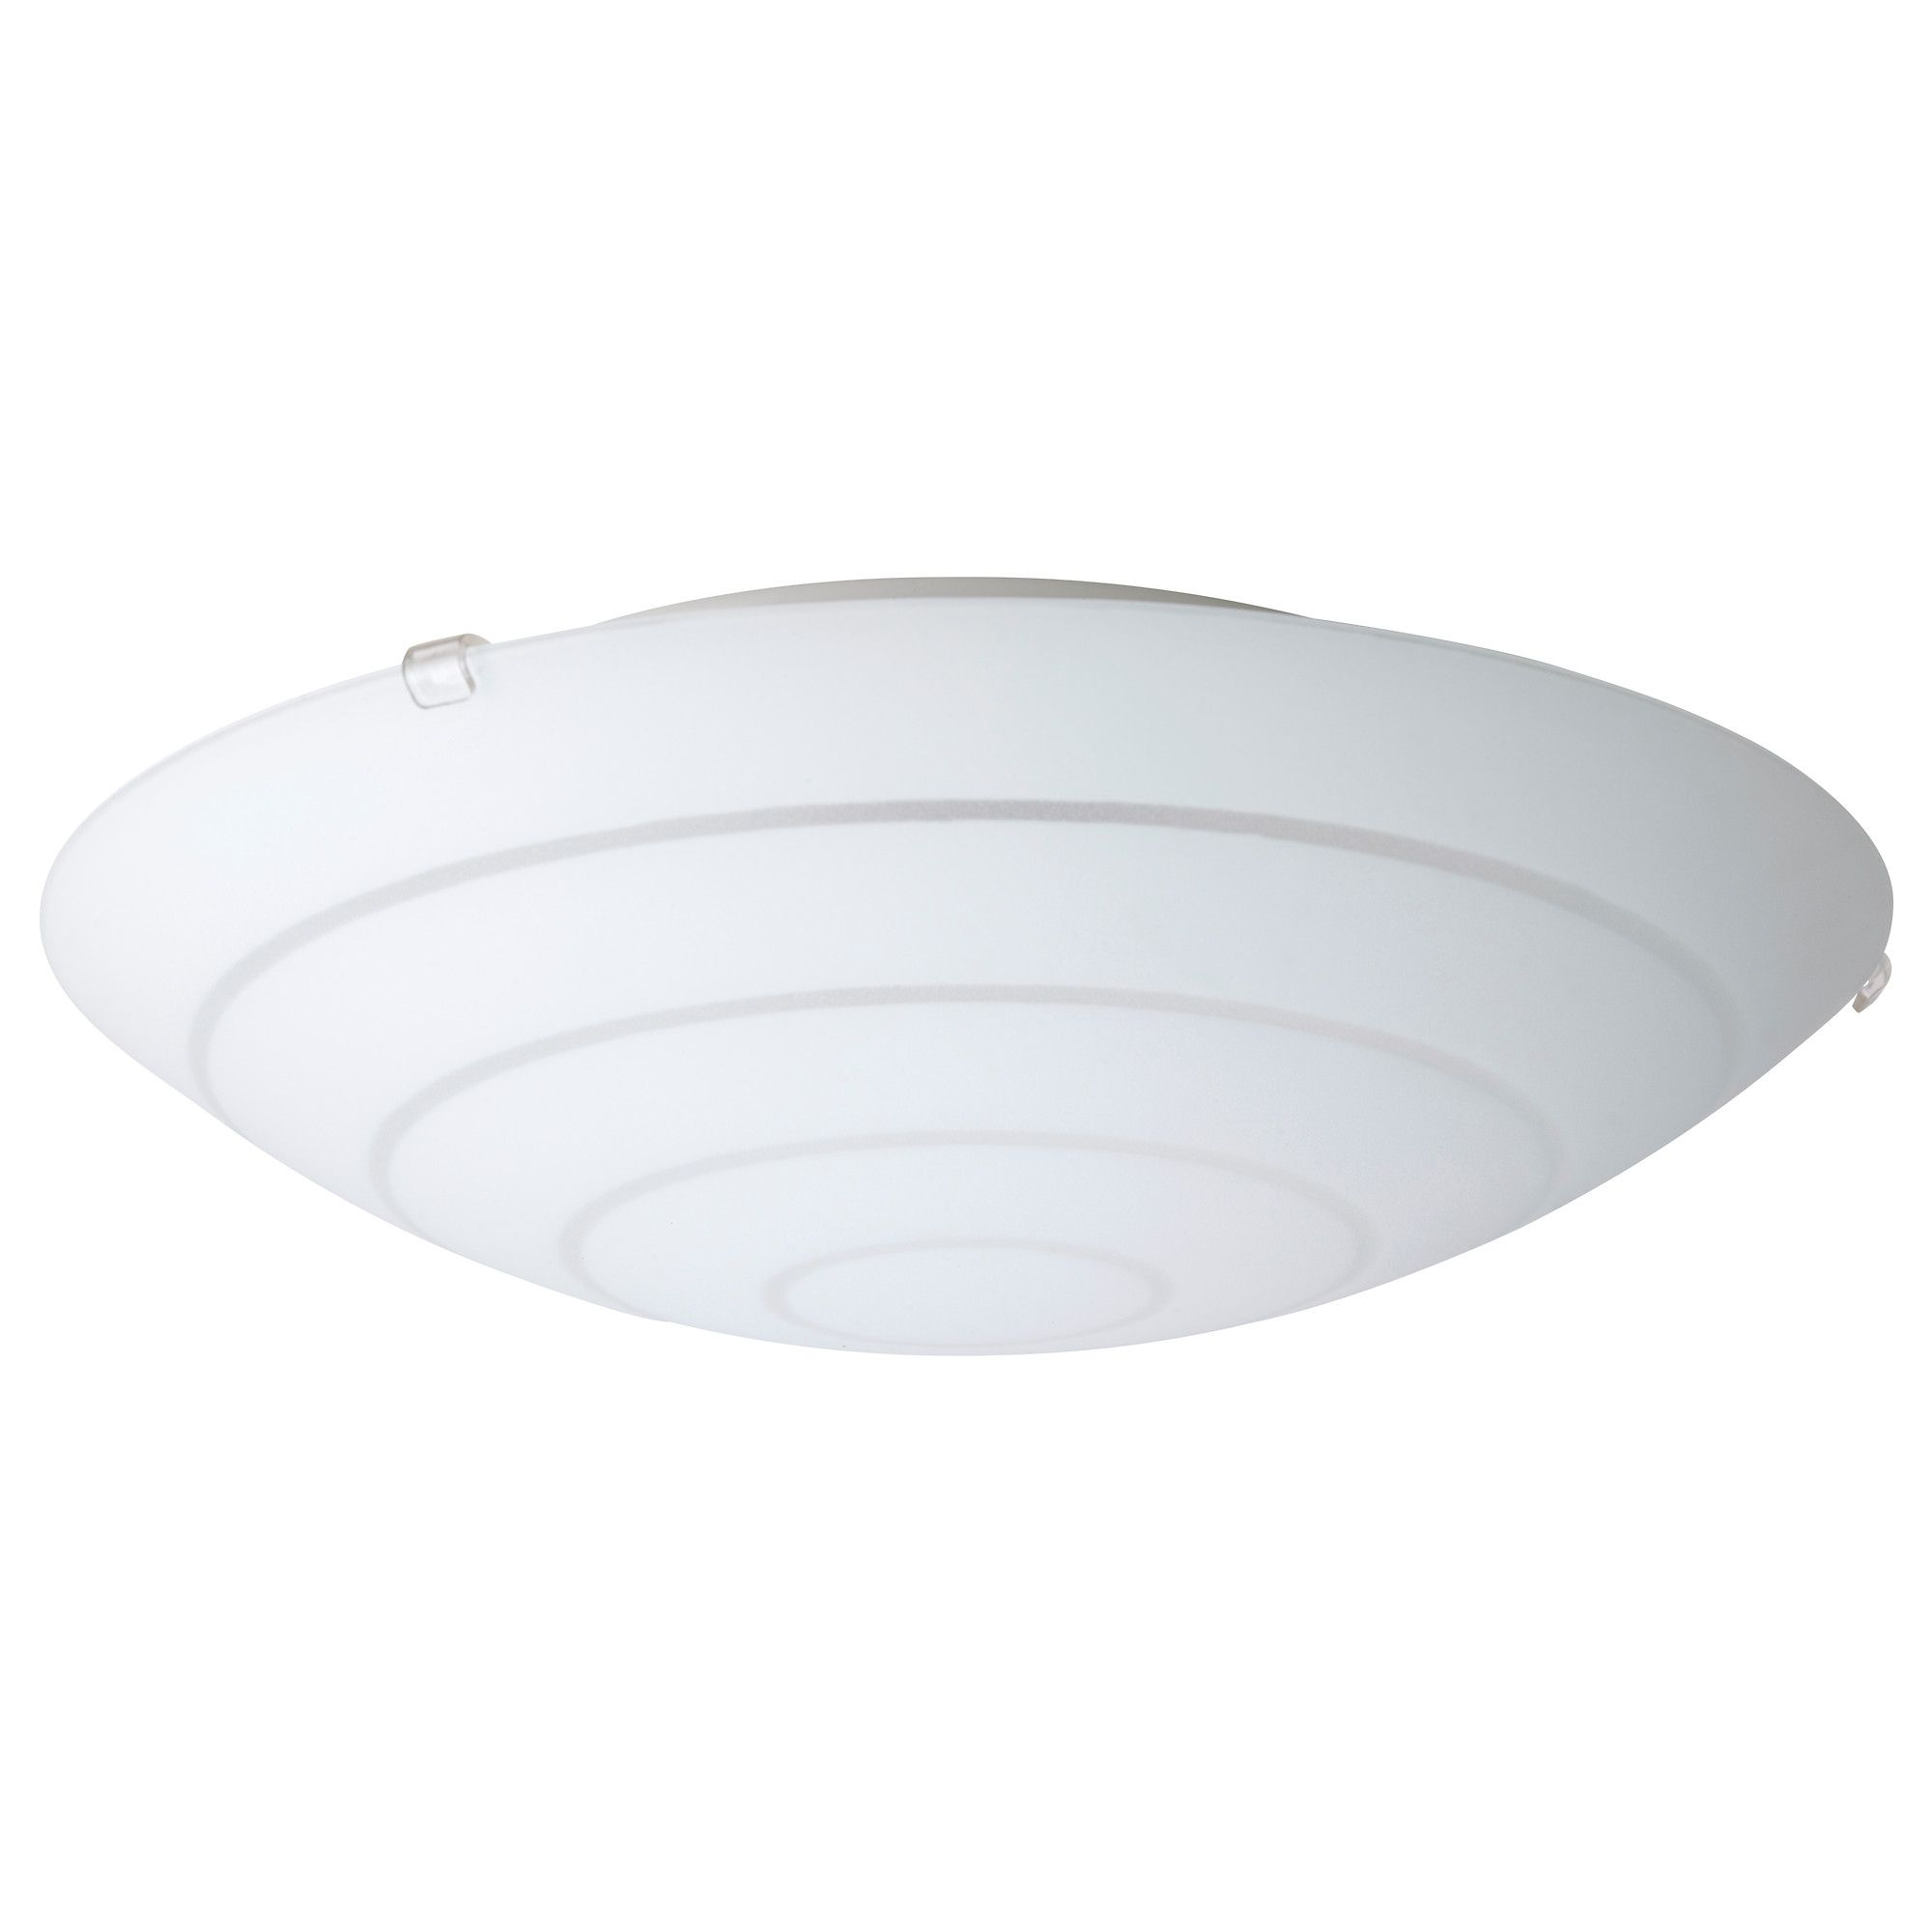 HYBY Ceiling Lamp   IKEA $13 Hall Basement, Possibly Office Overhead Lights